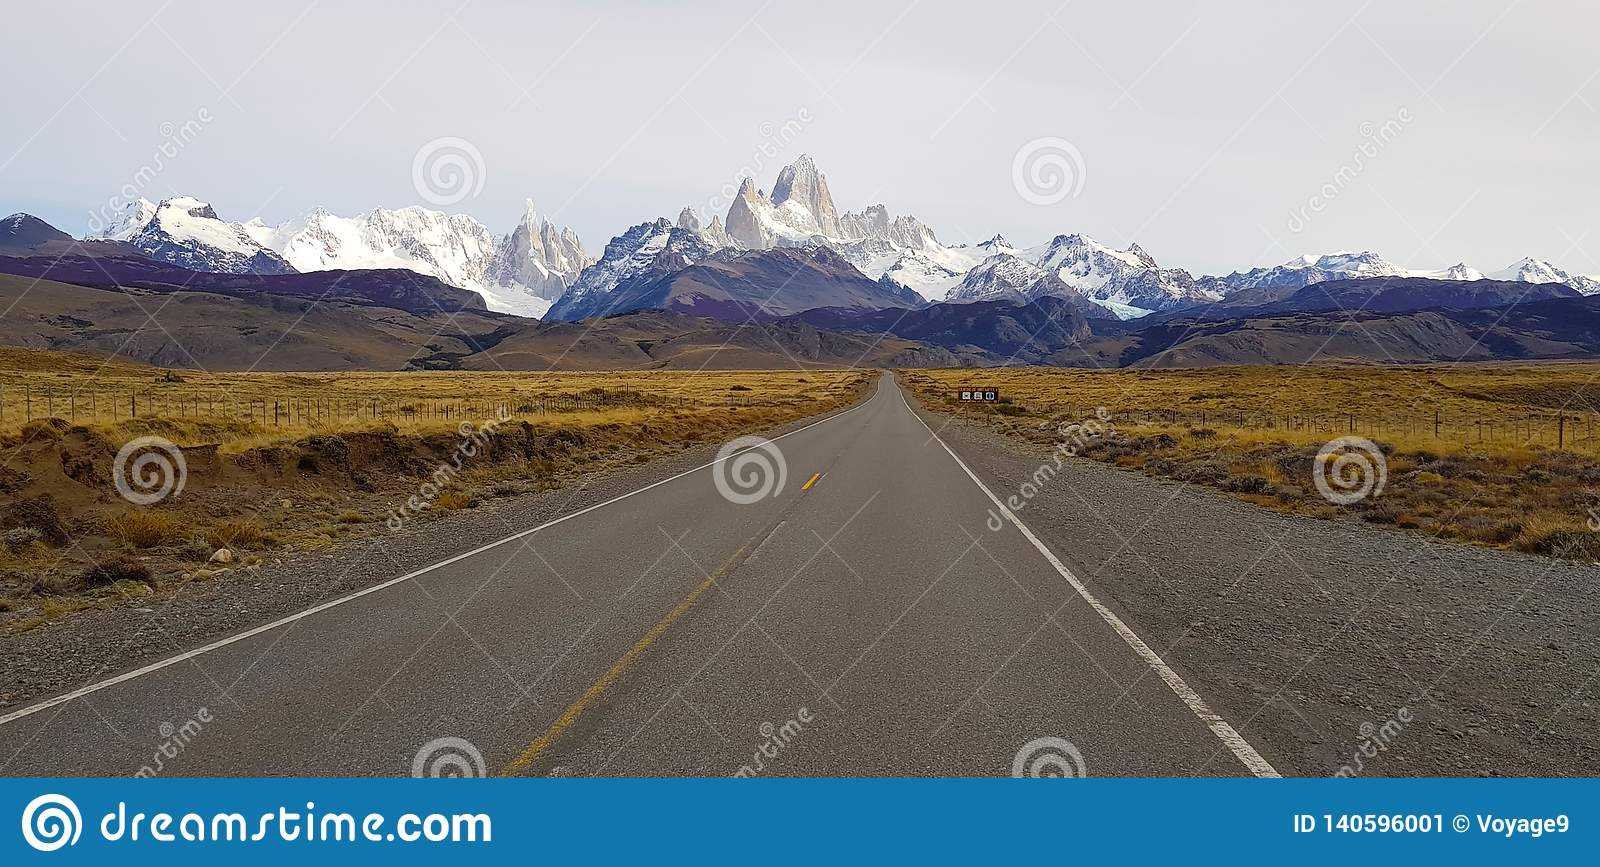 View of Mount Fitz Roy and Cerro Torre along the road to El Chalten, Patagonia, Argentina